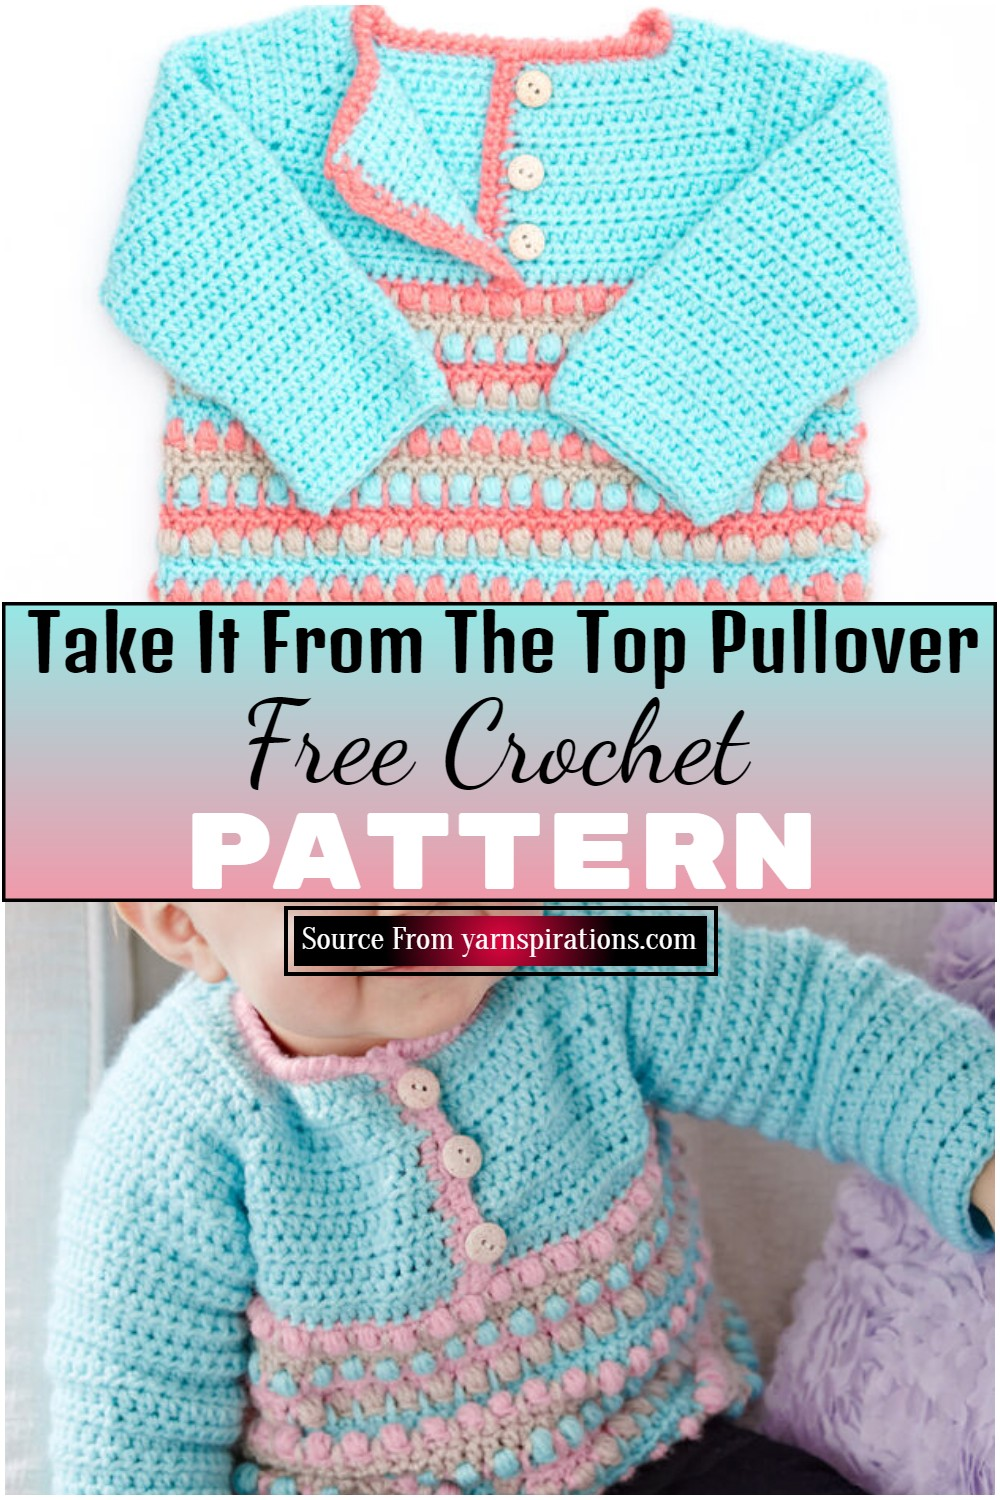 Take It From The Top Pullover Crochet Pattern